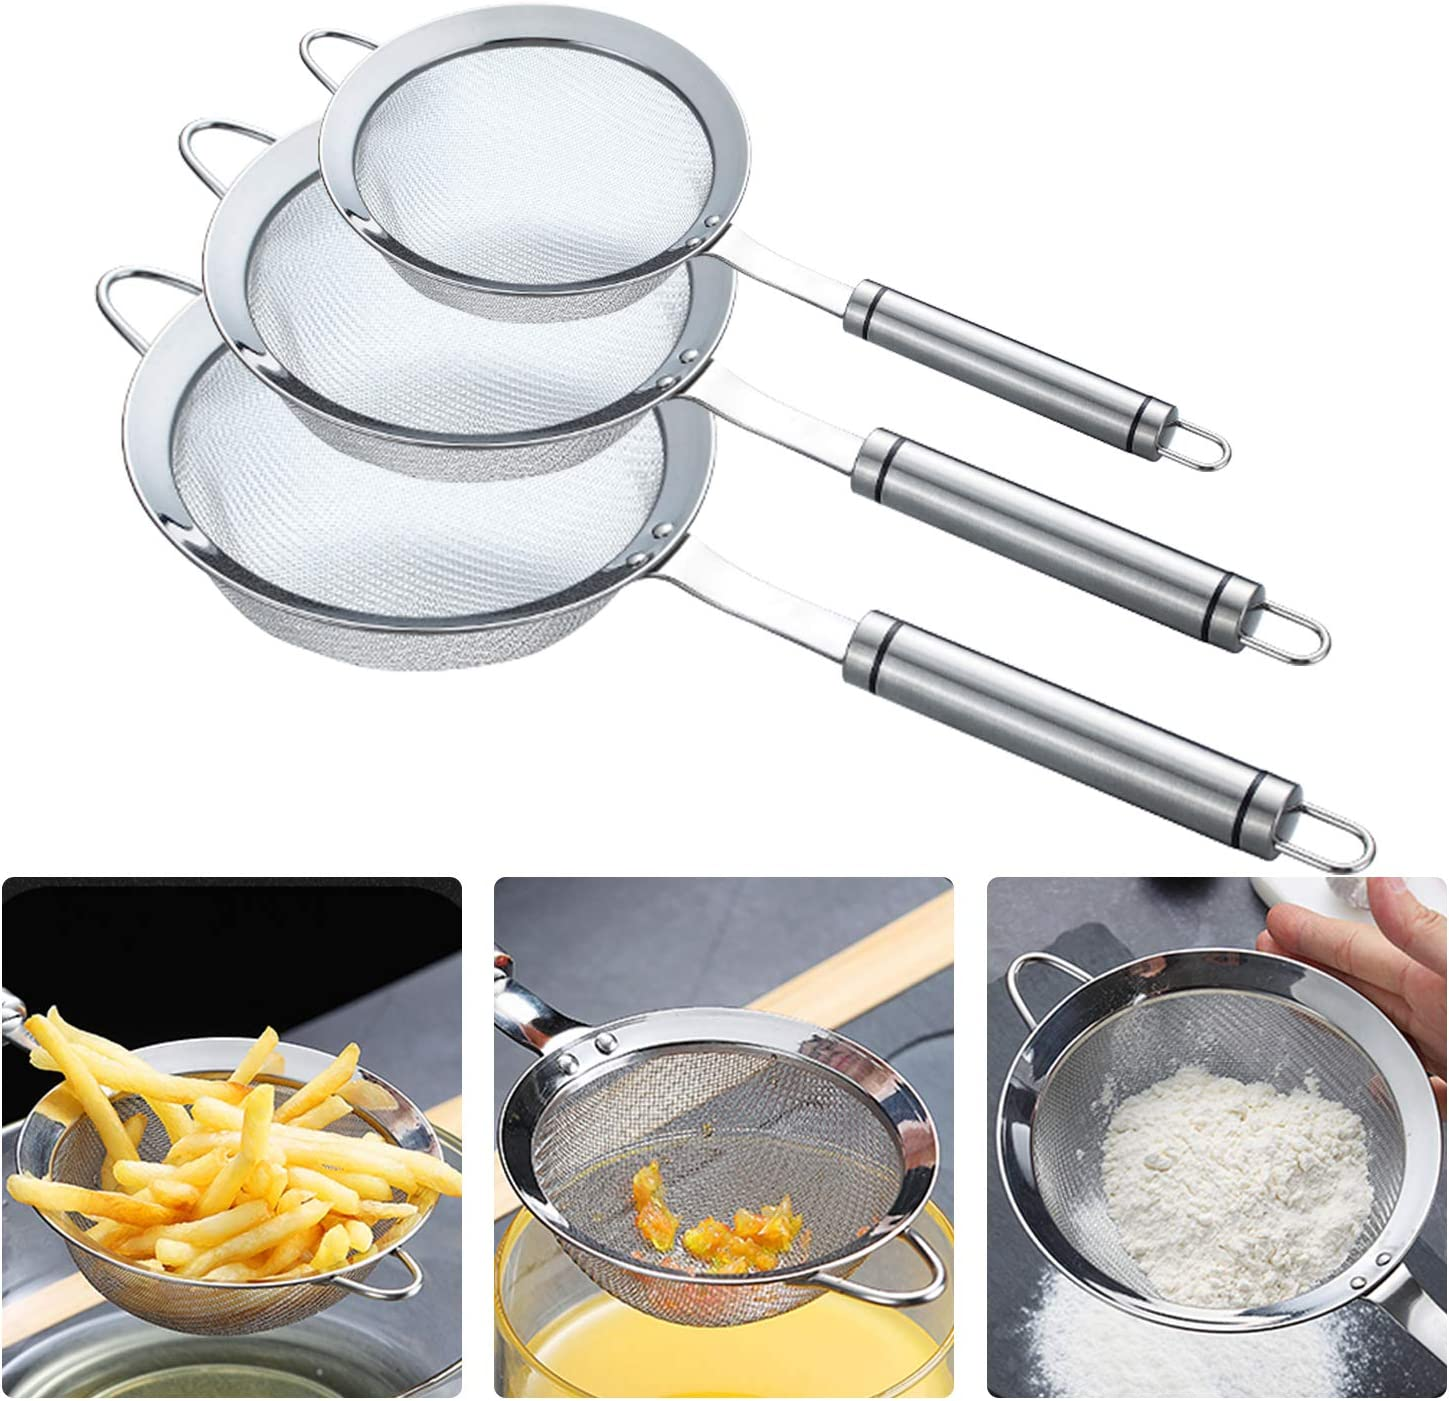 3pcs Mini Fine Mesh Stainless Steel Strainers Set - Premium Quality Kitchen Food Fine Mesh Strainer Colanders Sieve Sifters with Comfortable Non Slip Handles